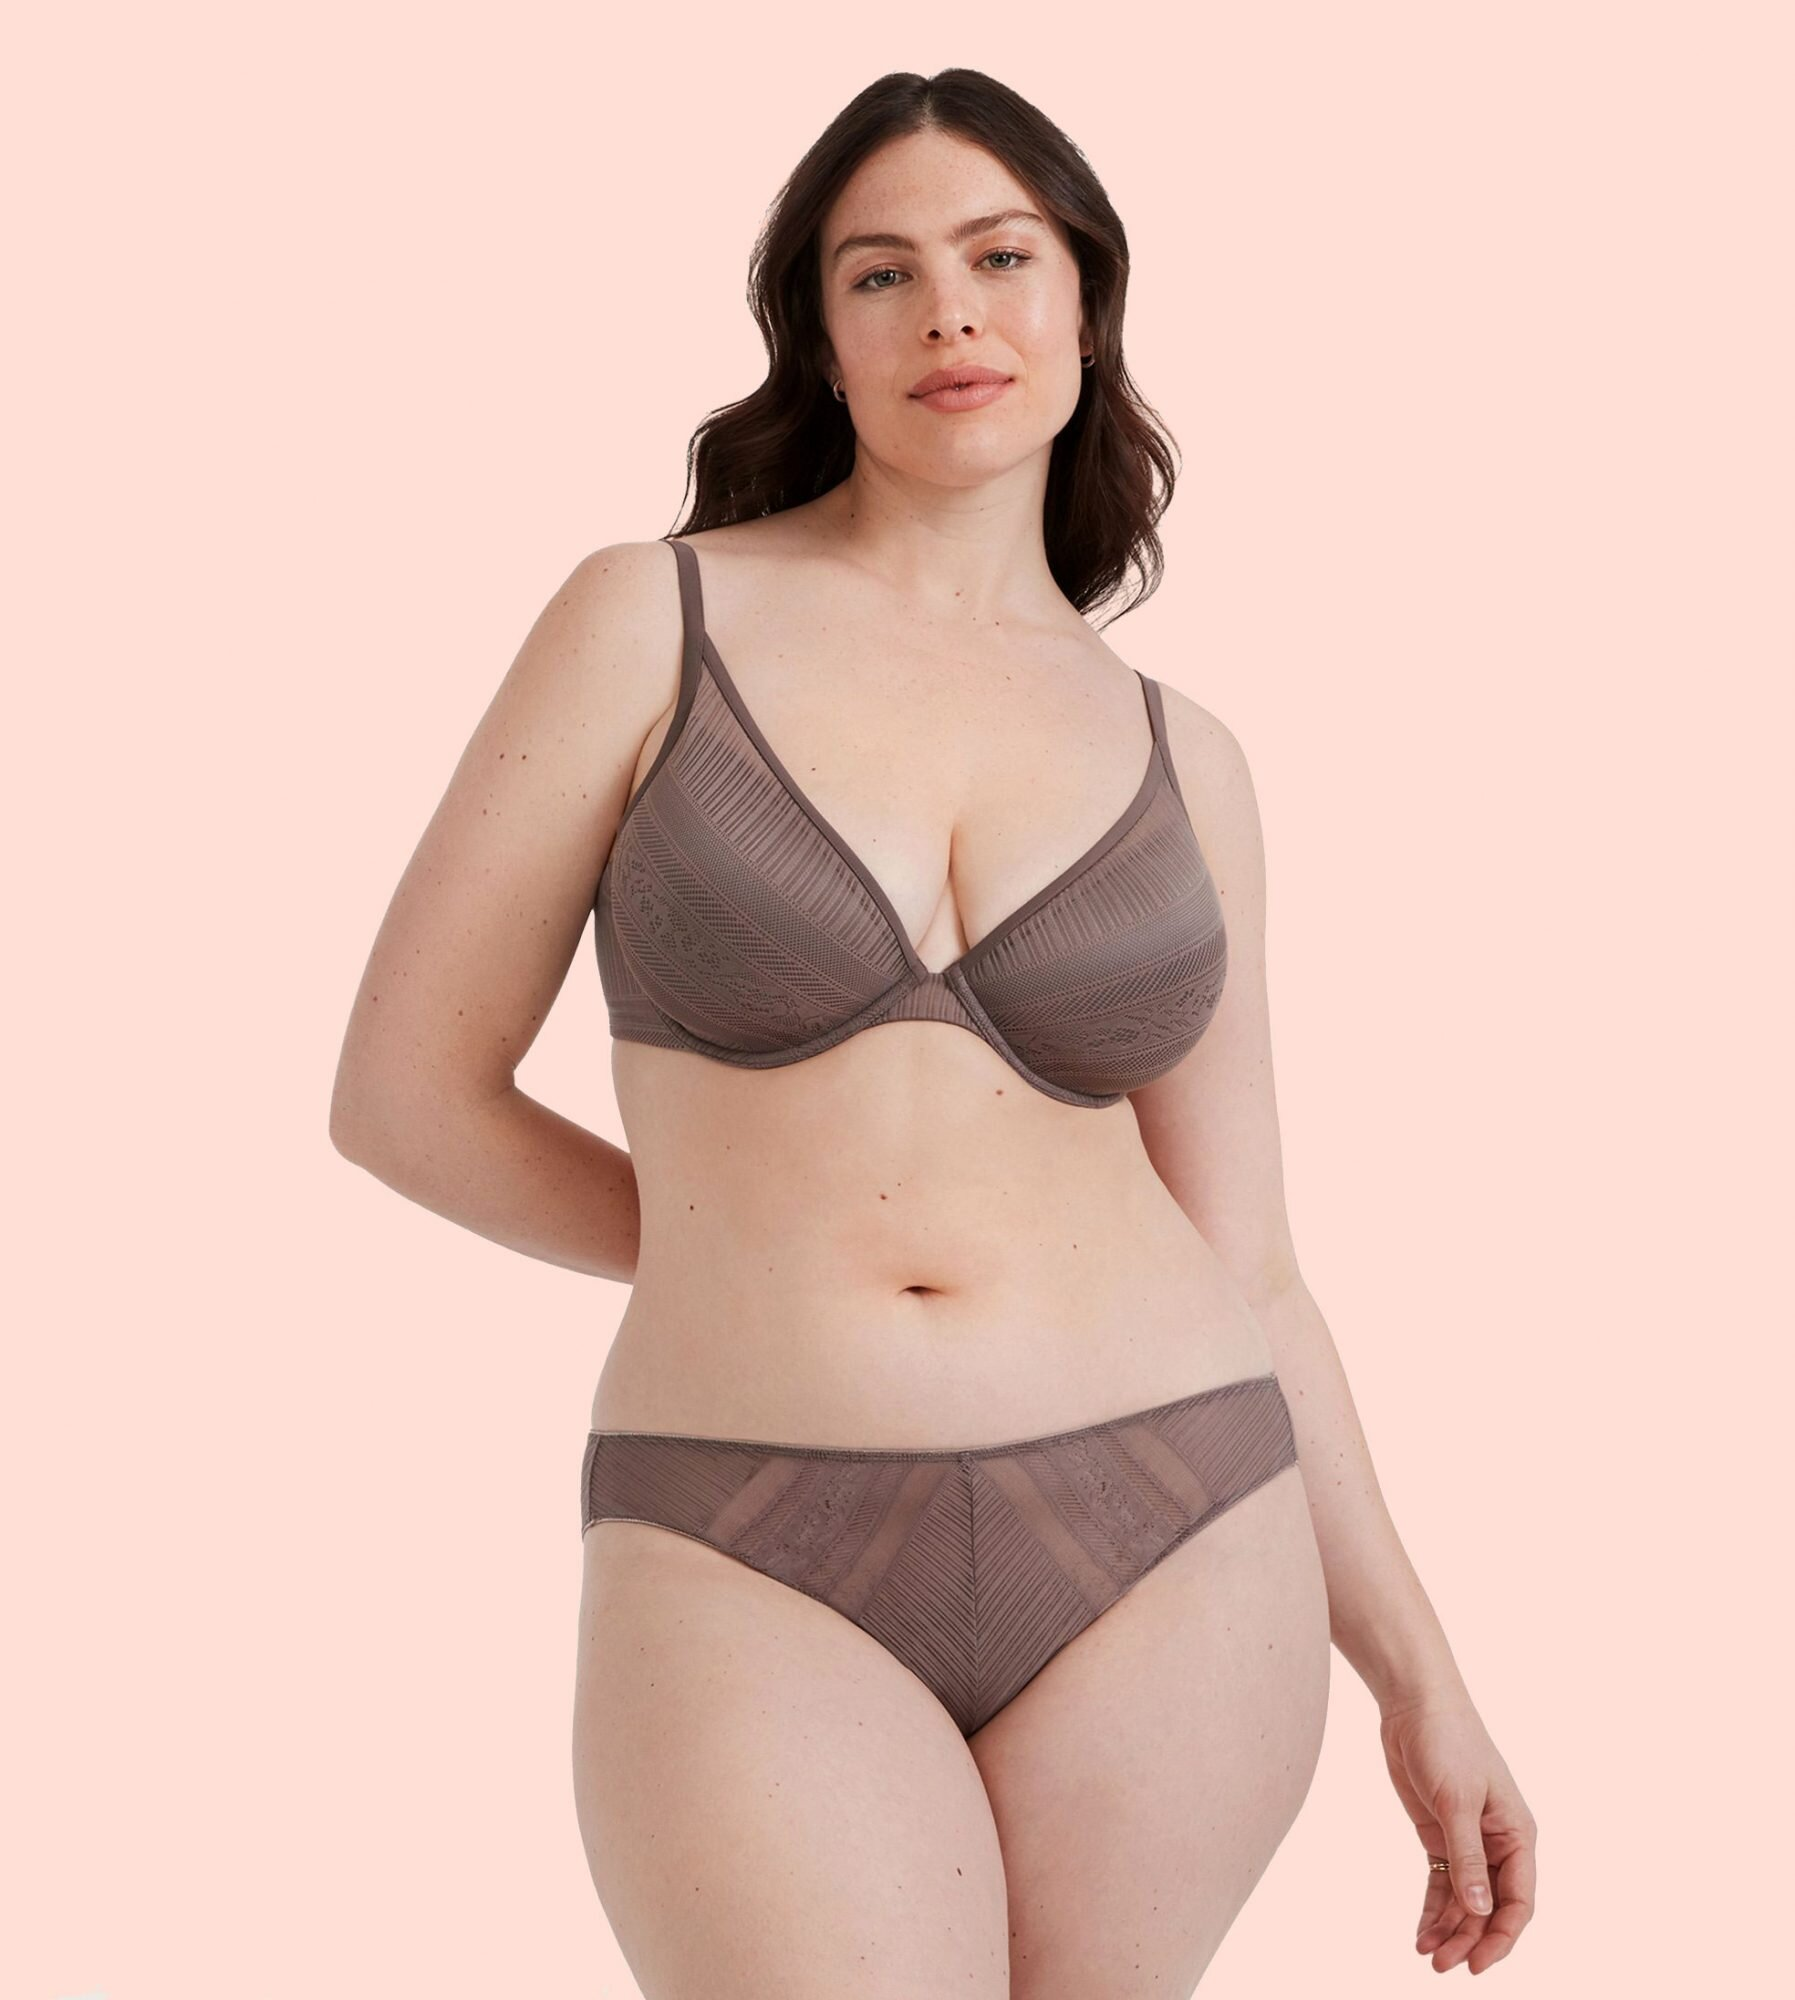 b69e0443413 The 15 Best Plus-Size Bras for 2019